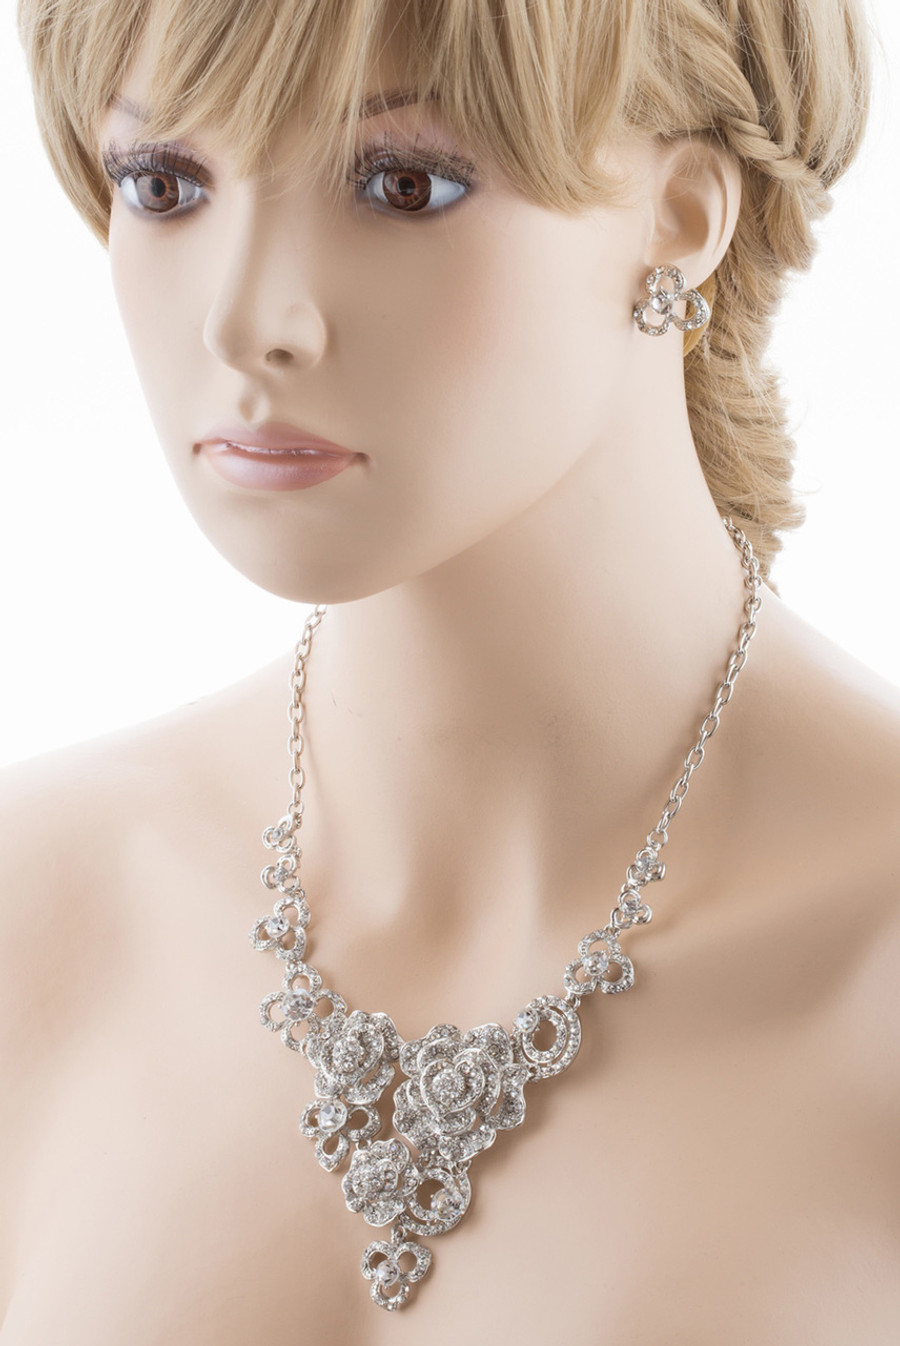 Bridal Wedding Jewelry Set Crystal Rhinestone Romantic Floral Design Necklace